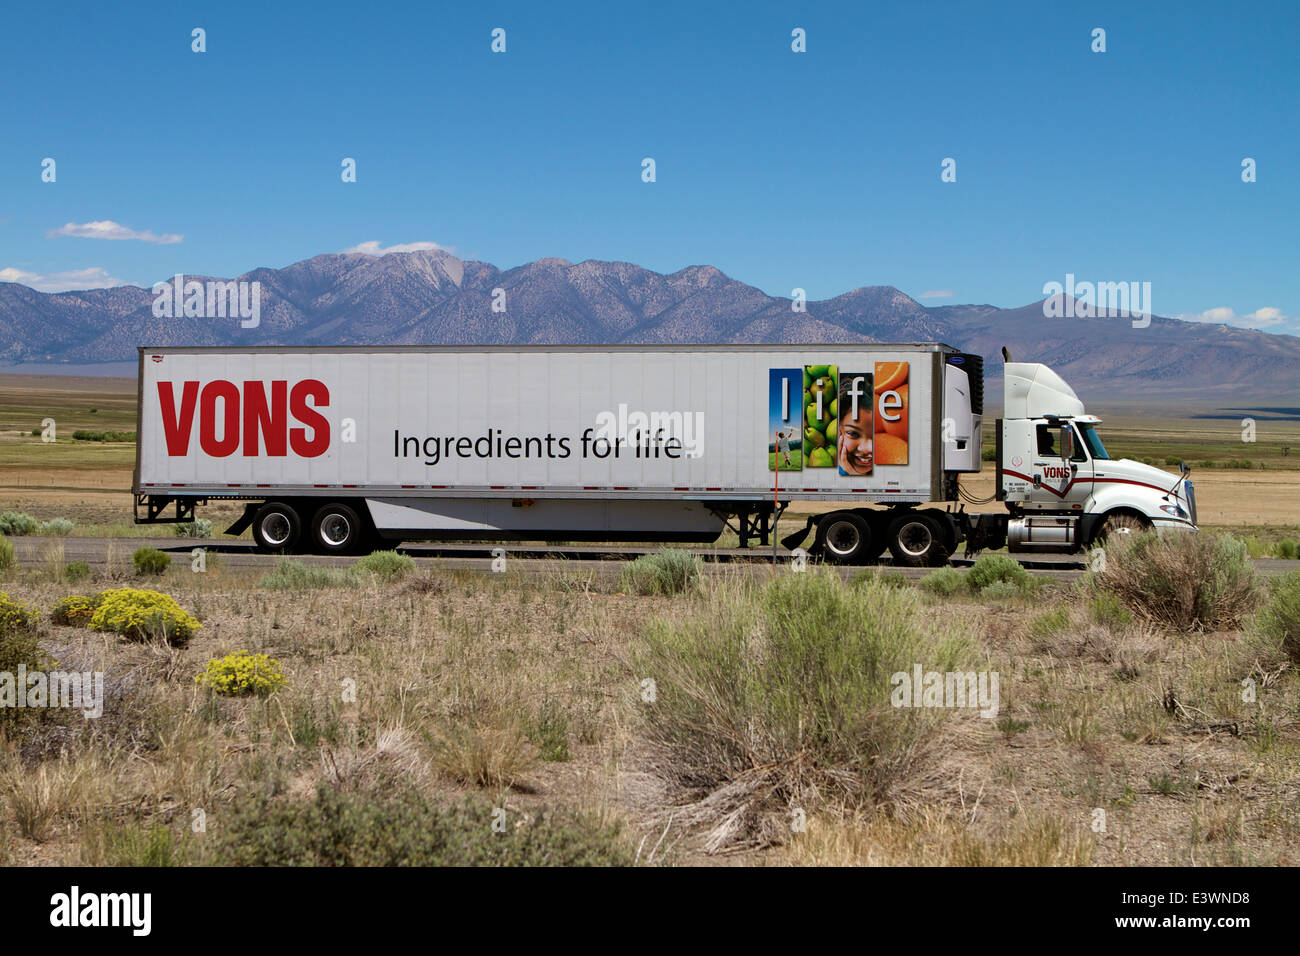 Explore the store, shop online, manage your orders and learn how to get the most out of your rewards points through our loyalty program with Vons.